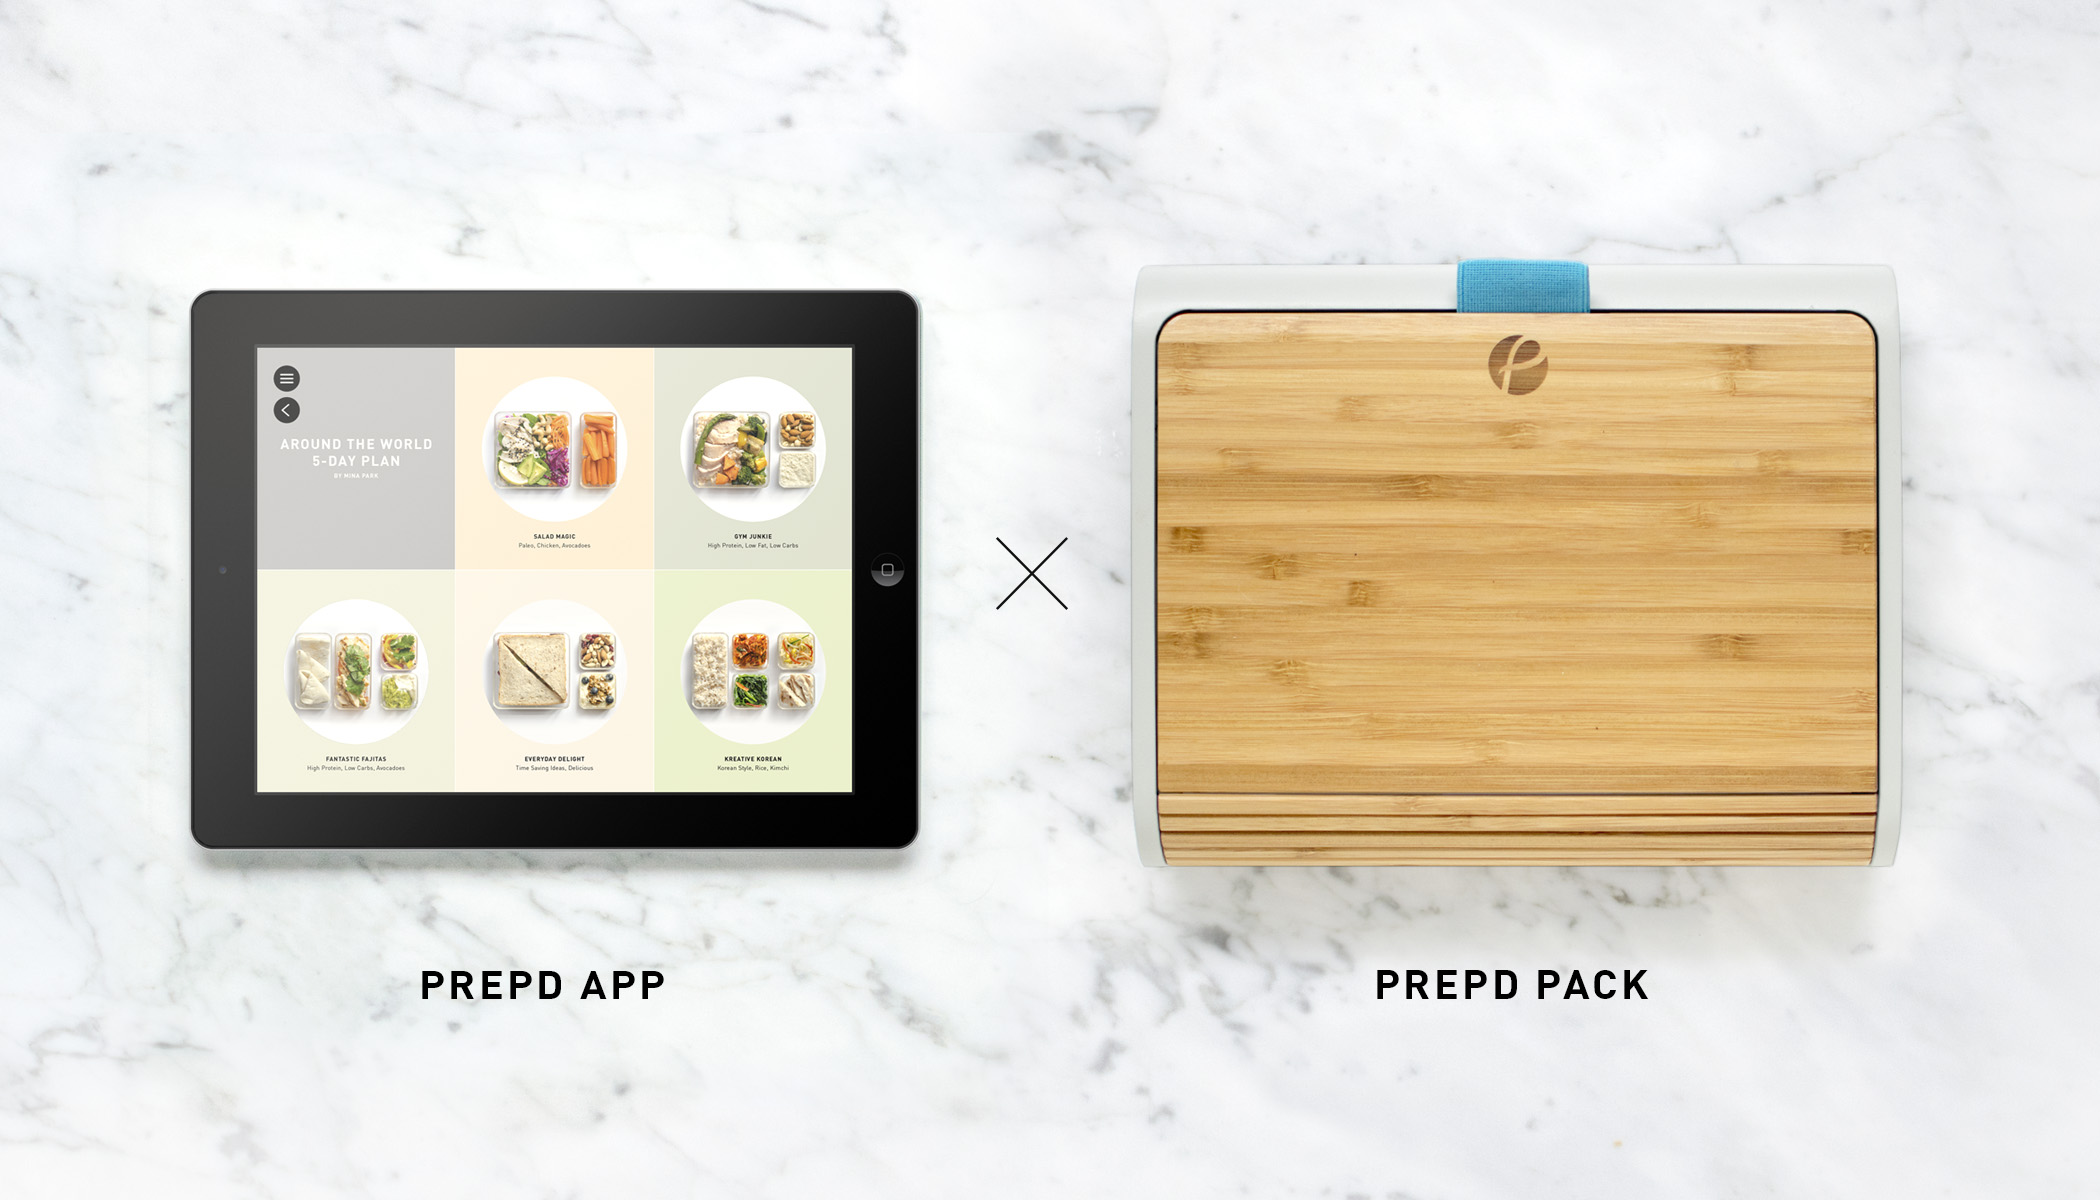 Prepd_Pack_Plus_App_1_20